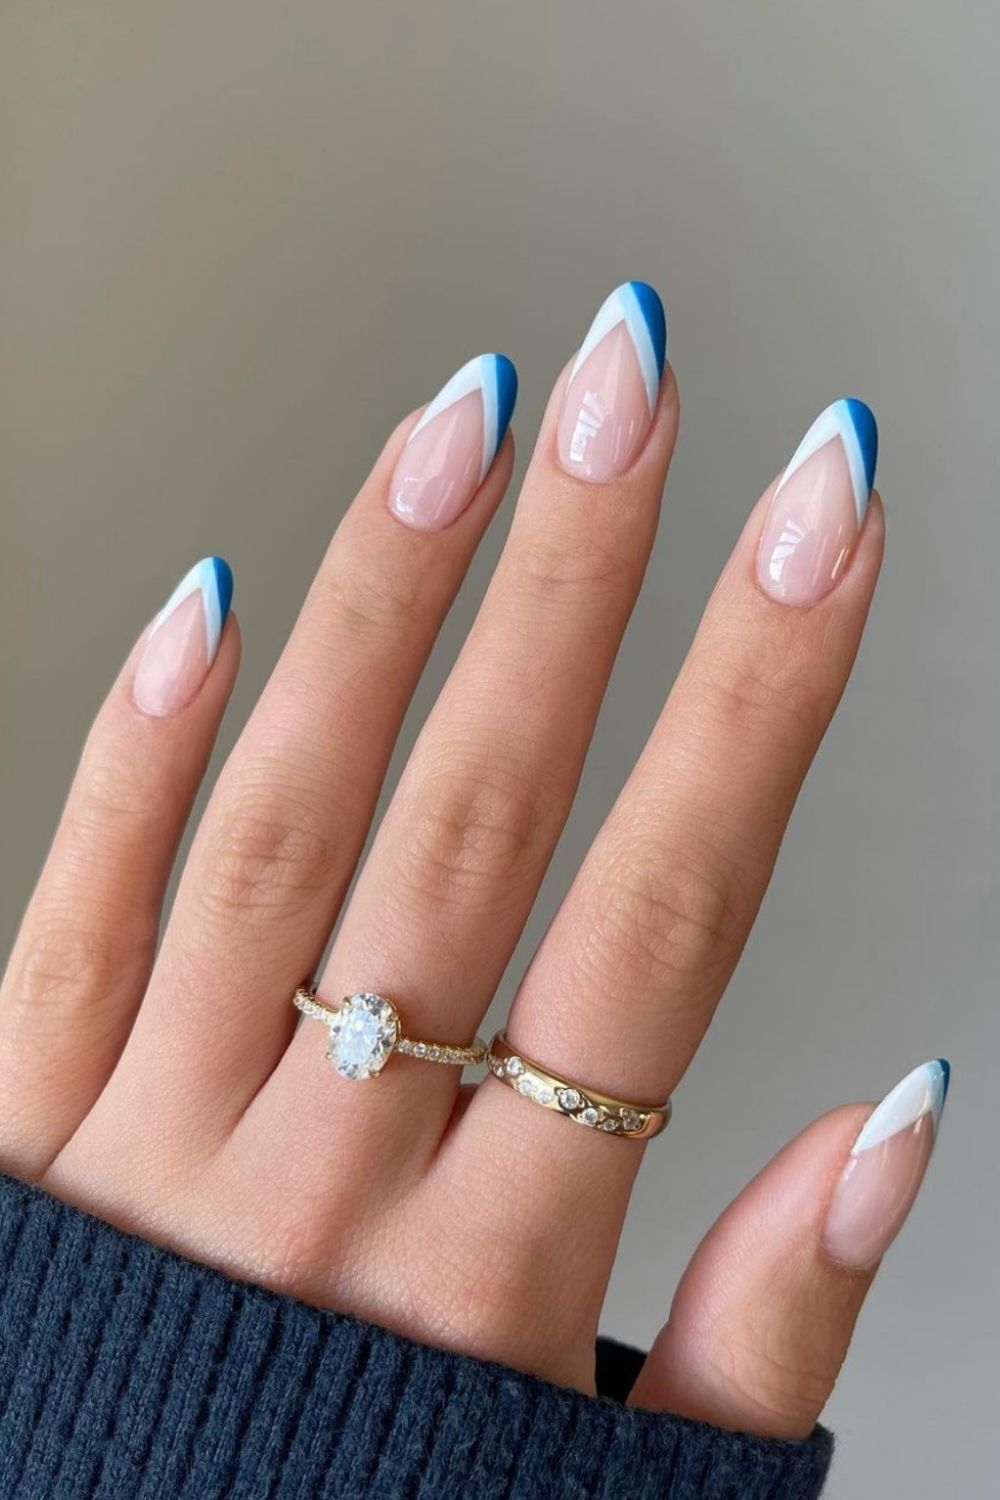 30 Best Fall French tip almond nails design to try 2021